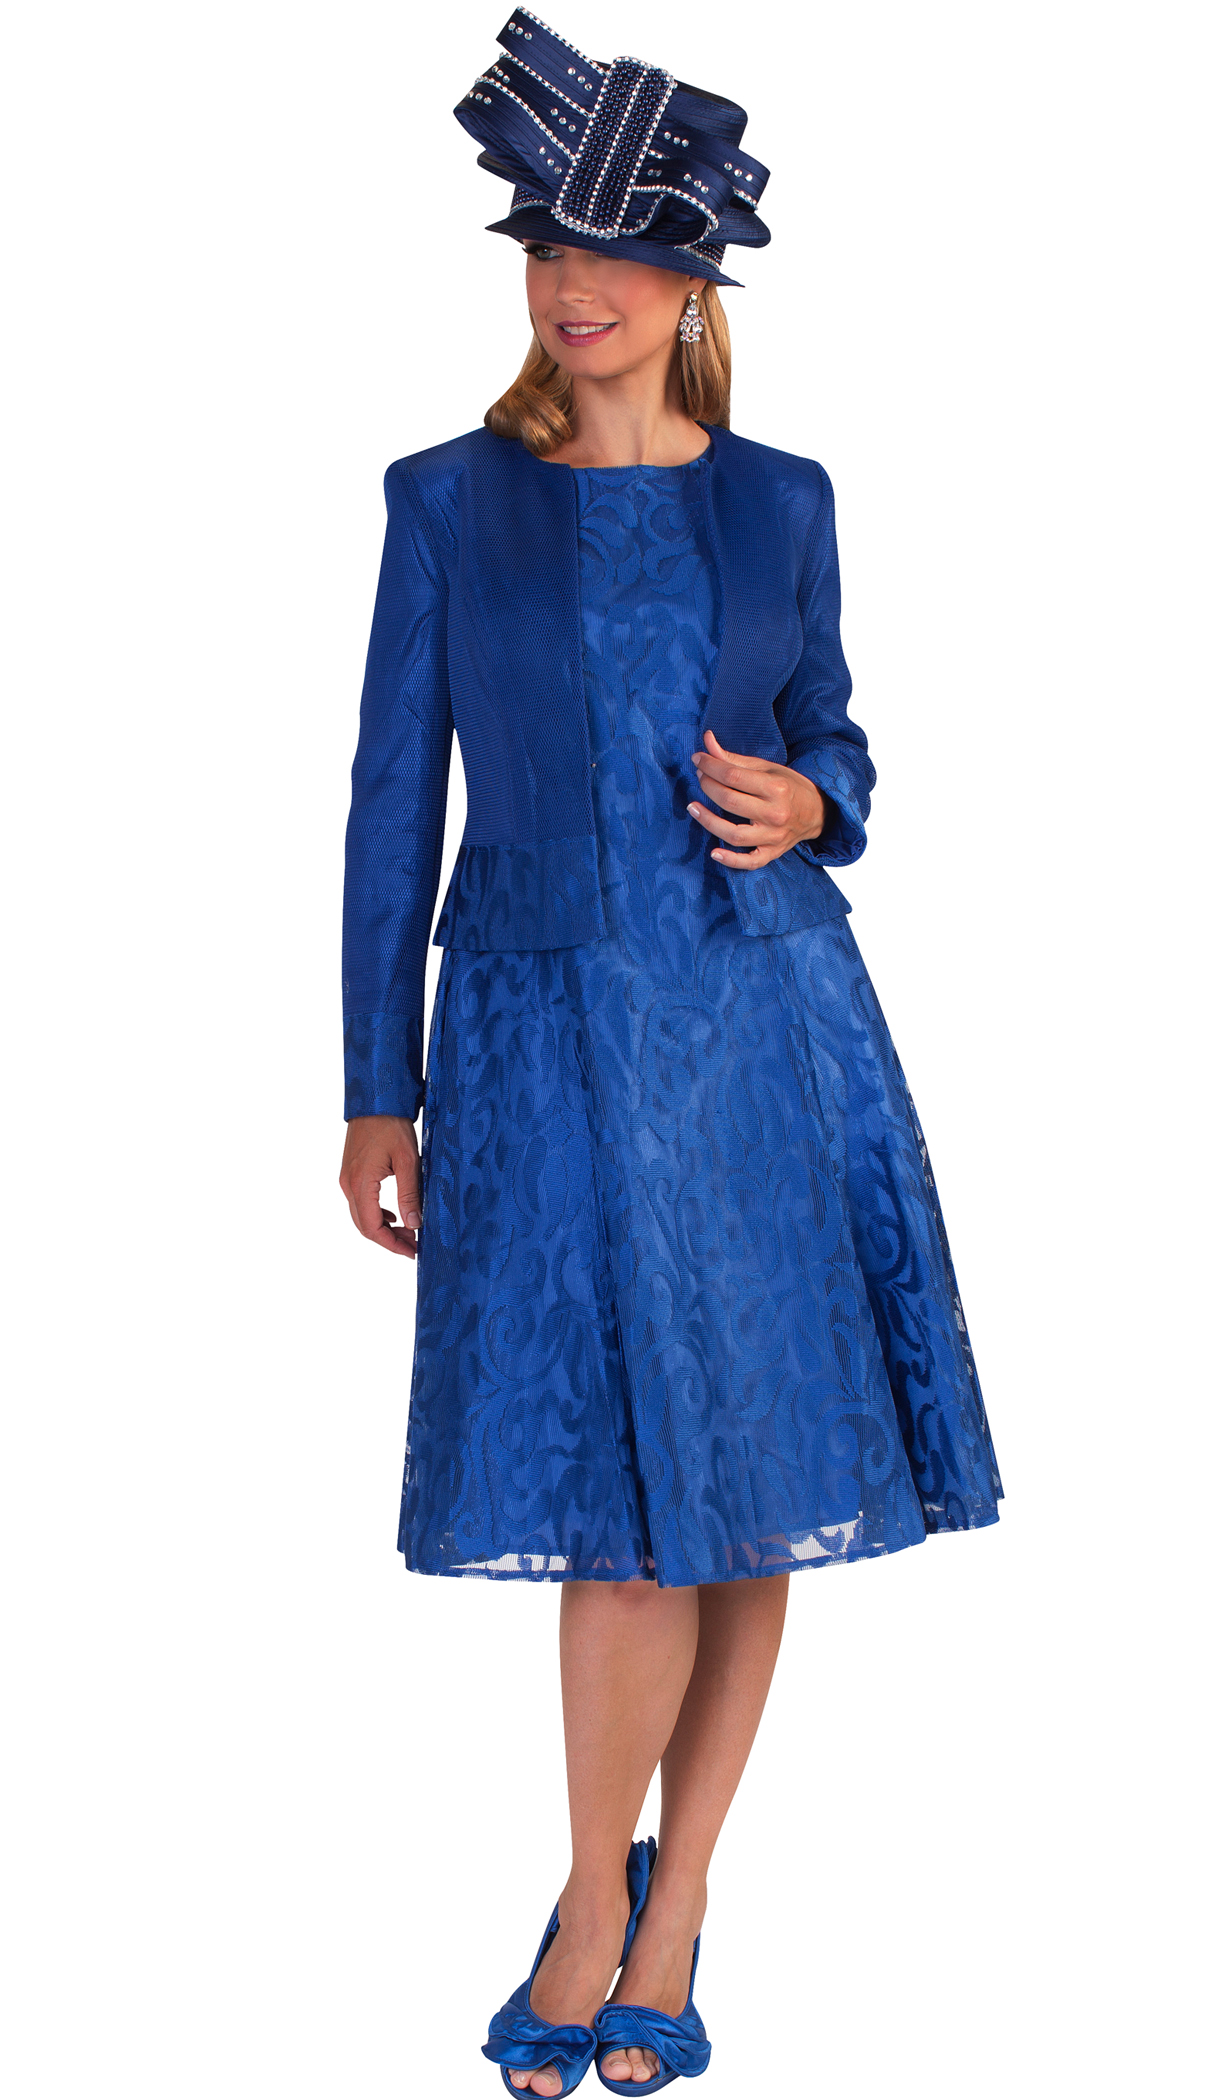 Tally Taylor Dress 4644-BLU-CO